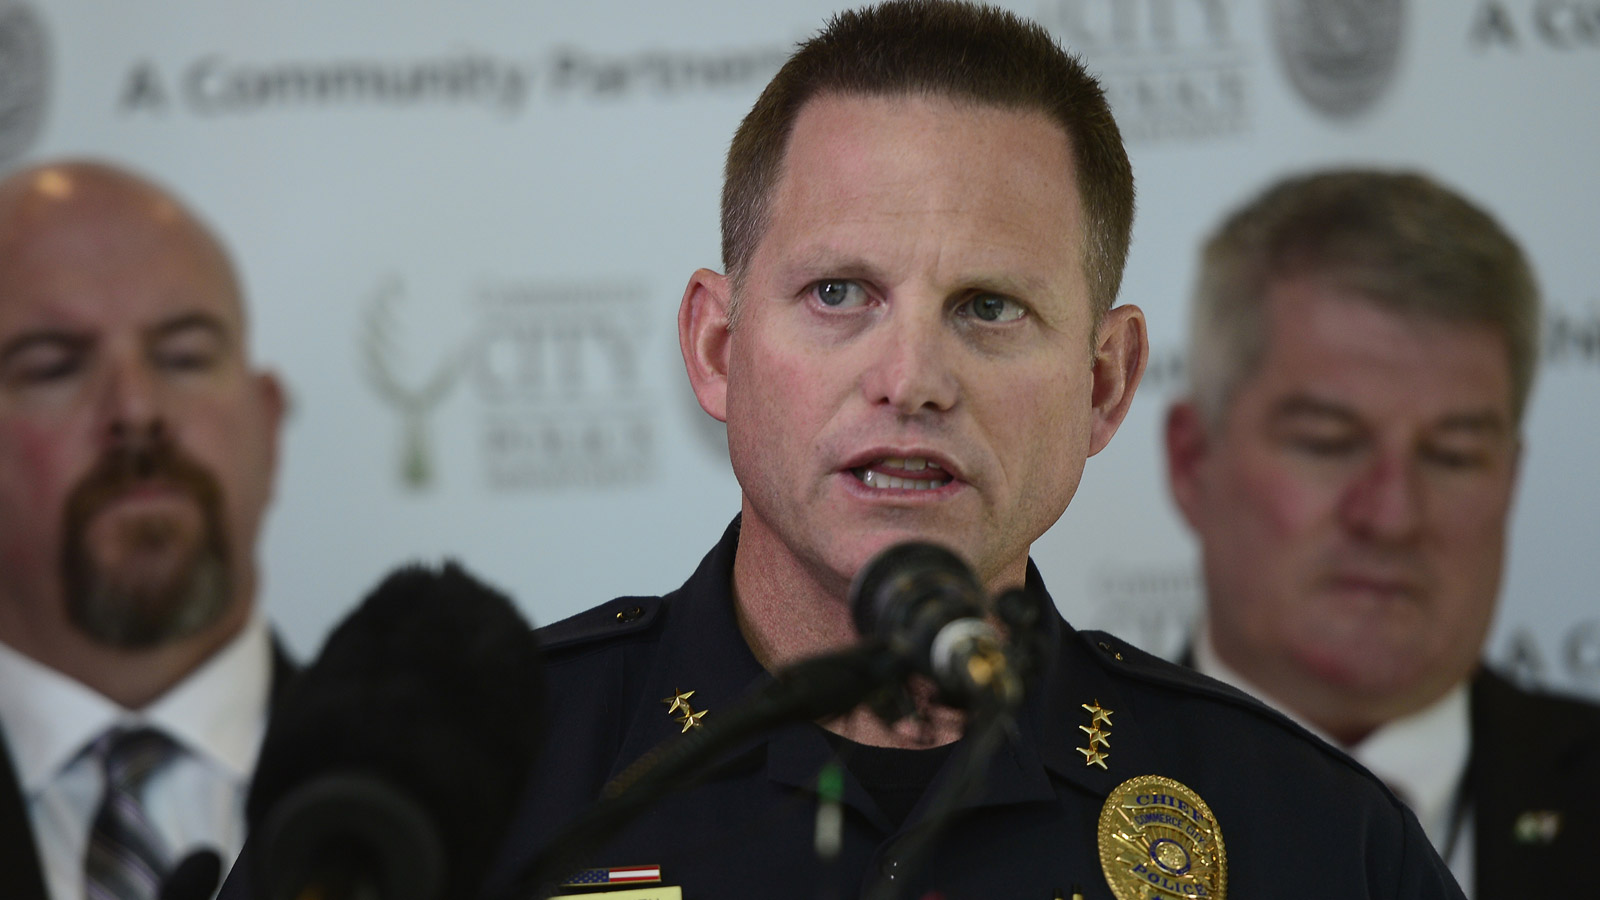 Commerce City Police Chief Troy Smith (credit: Brent Lewis/The Denver Post via Getty Images)